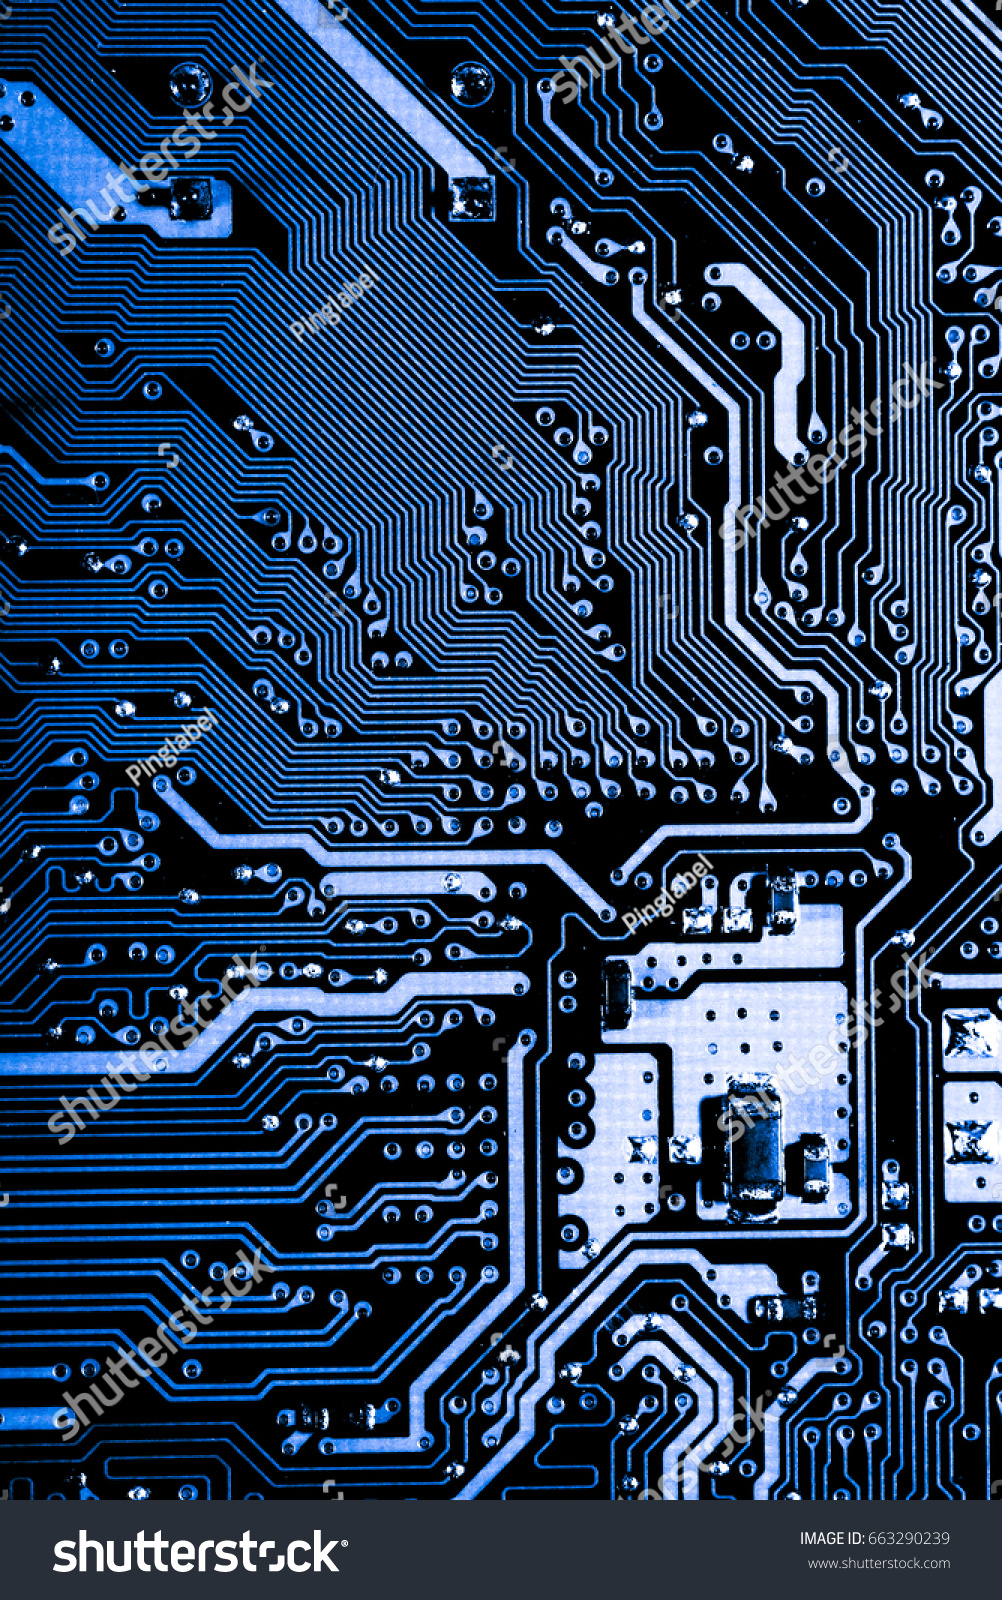 Abstract Close Electronic Circuits Technology On Stock Photo Edit Circuit And Logic Design Up Of In Mainboard Computer Background Board